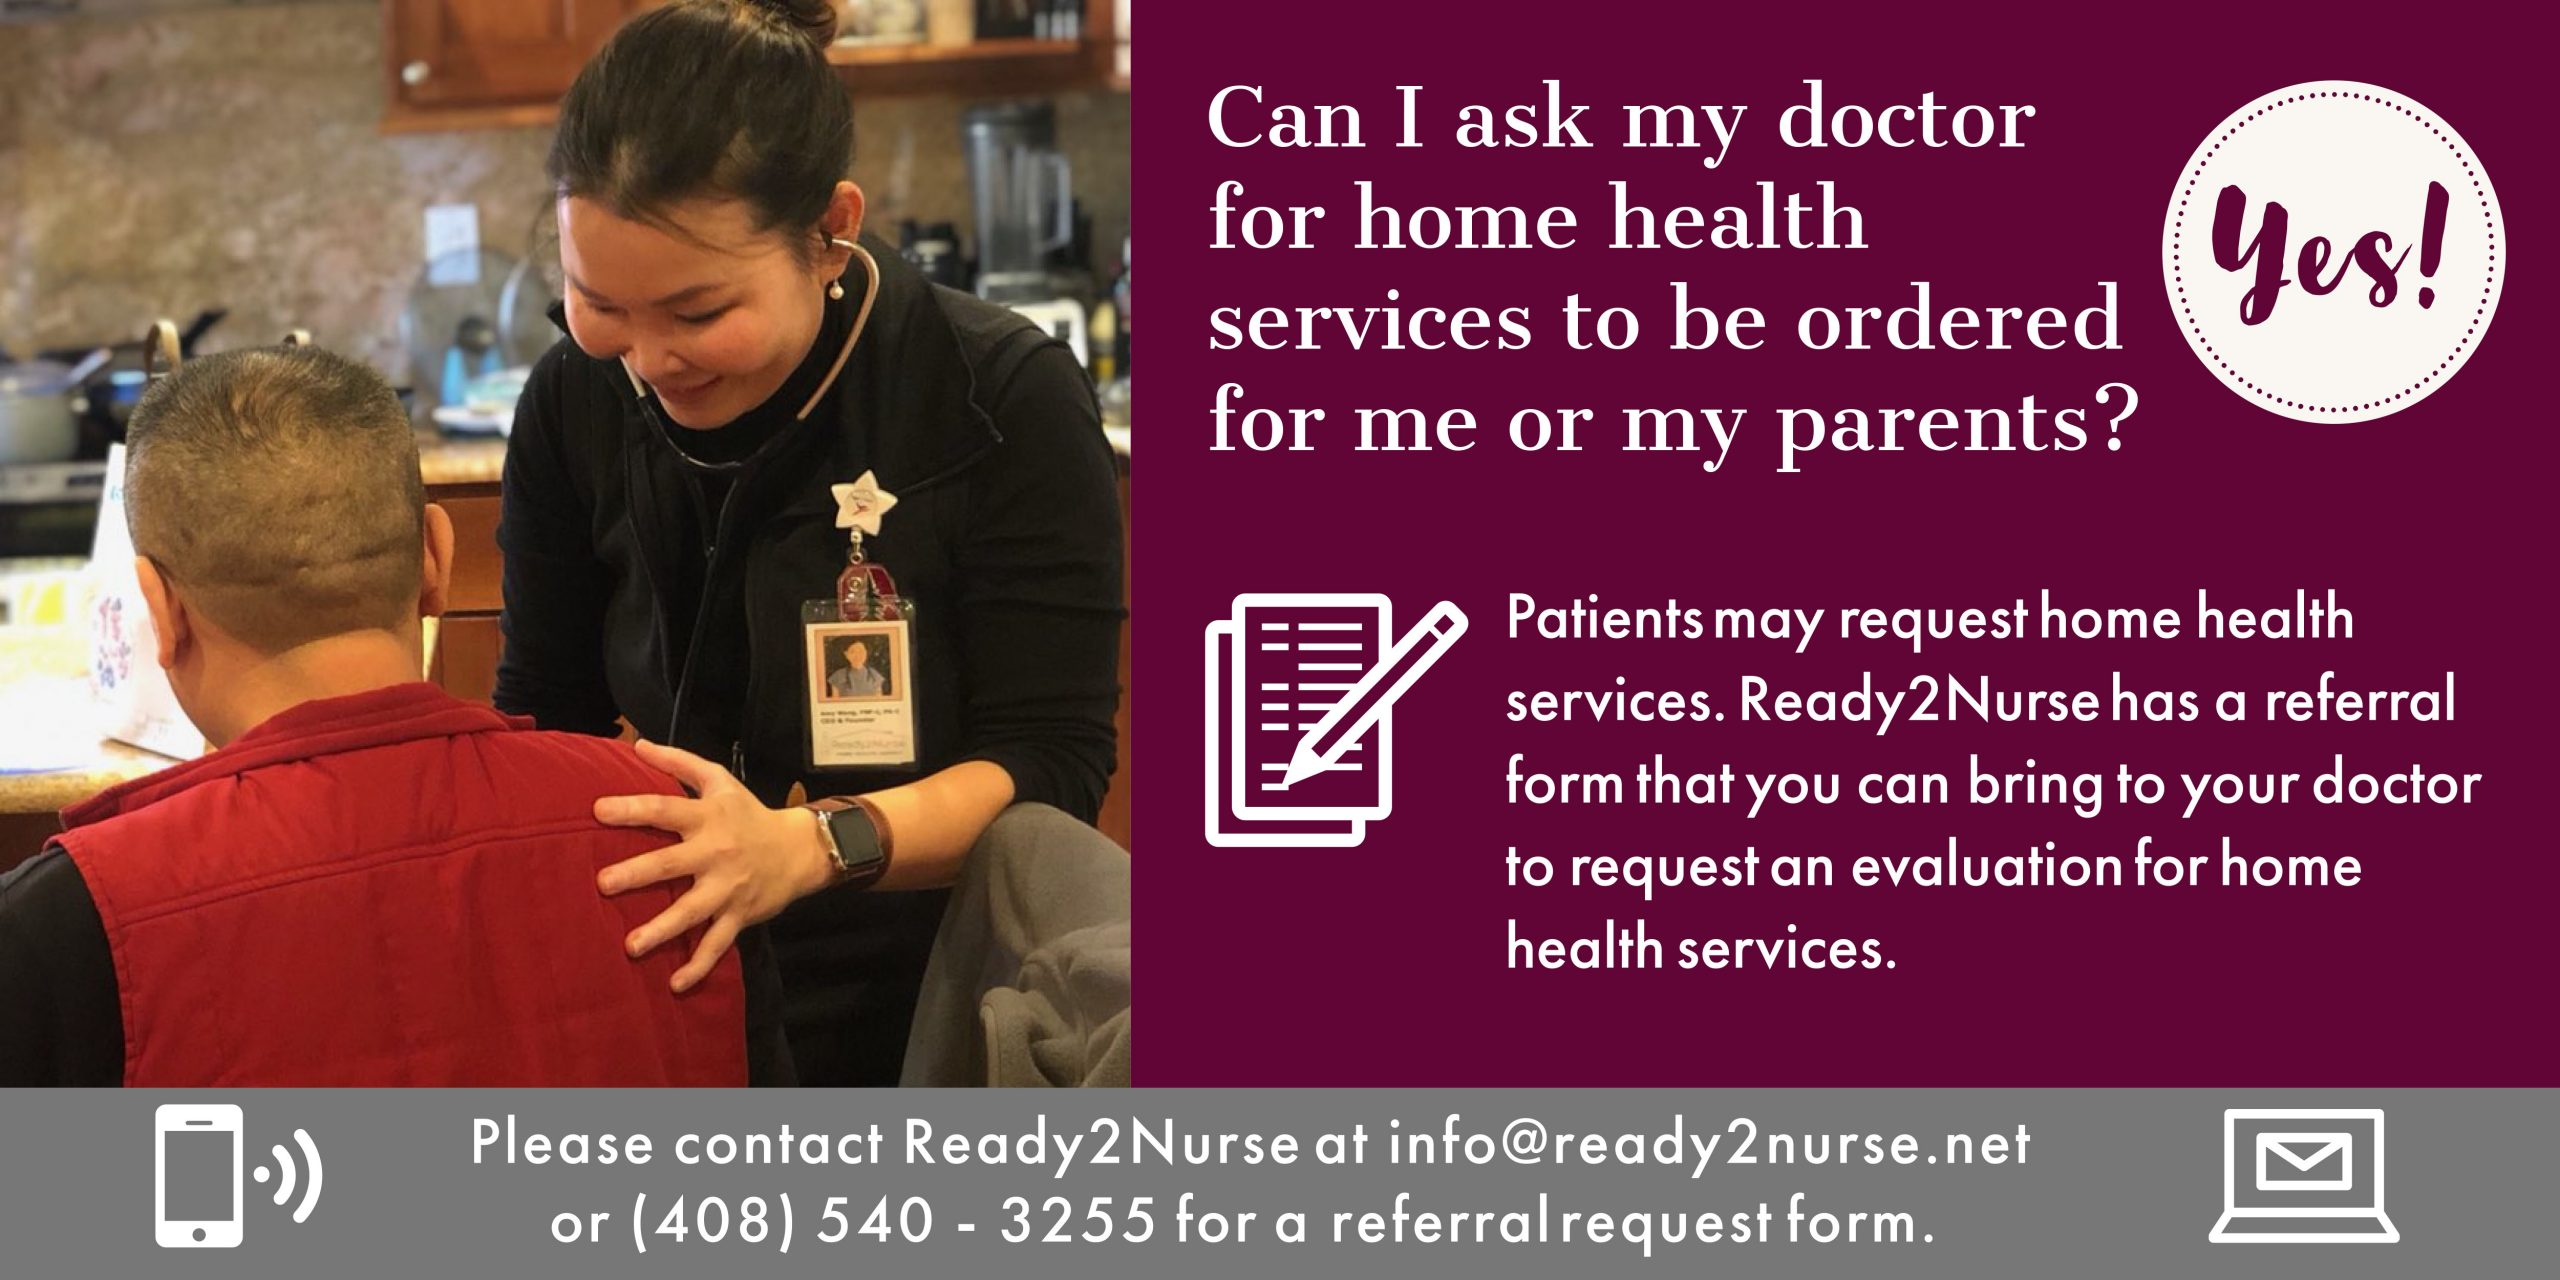 Can I ask my doctor for home health services to be ordered for me or my parents?